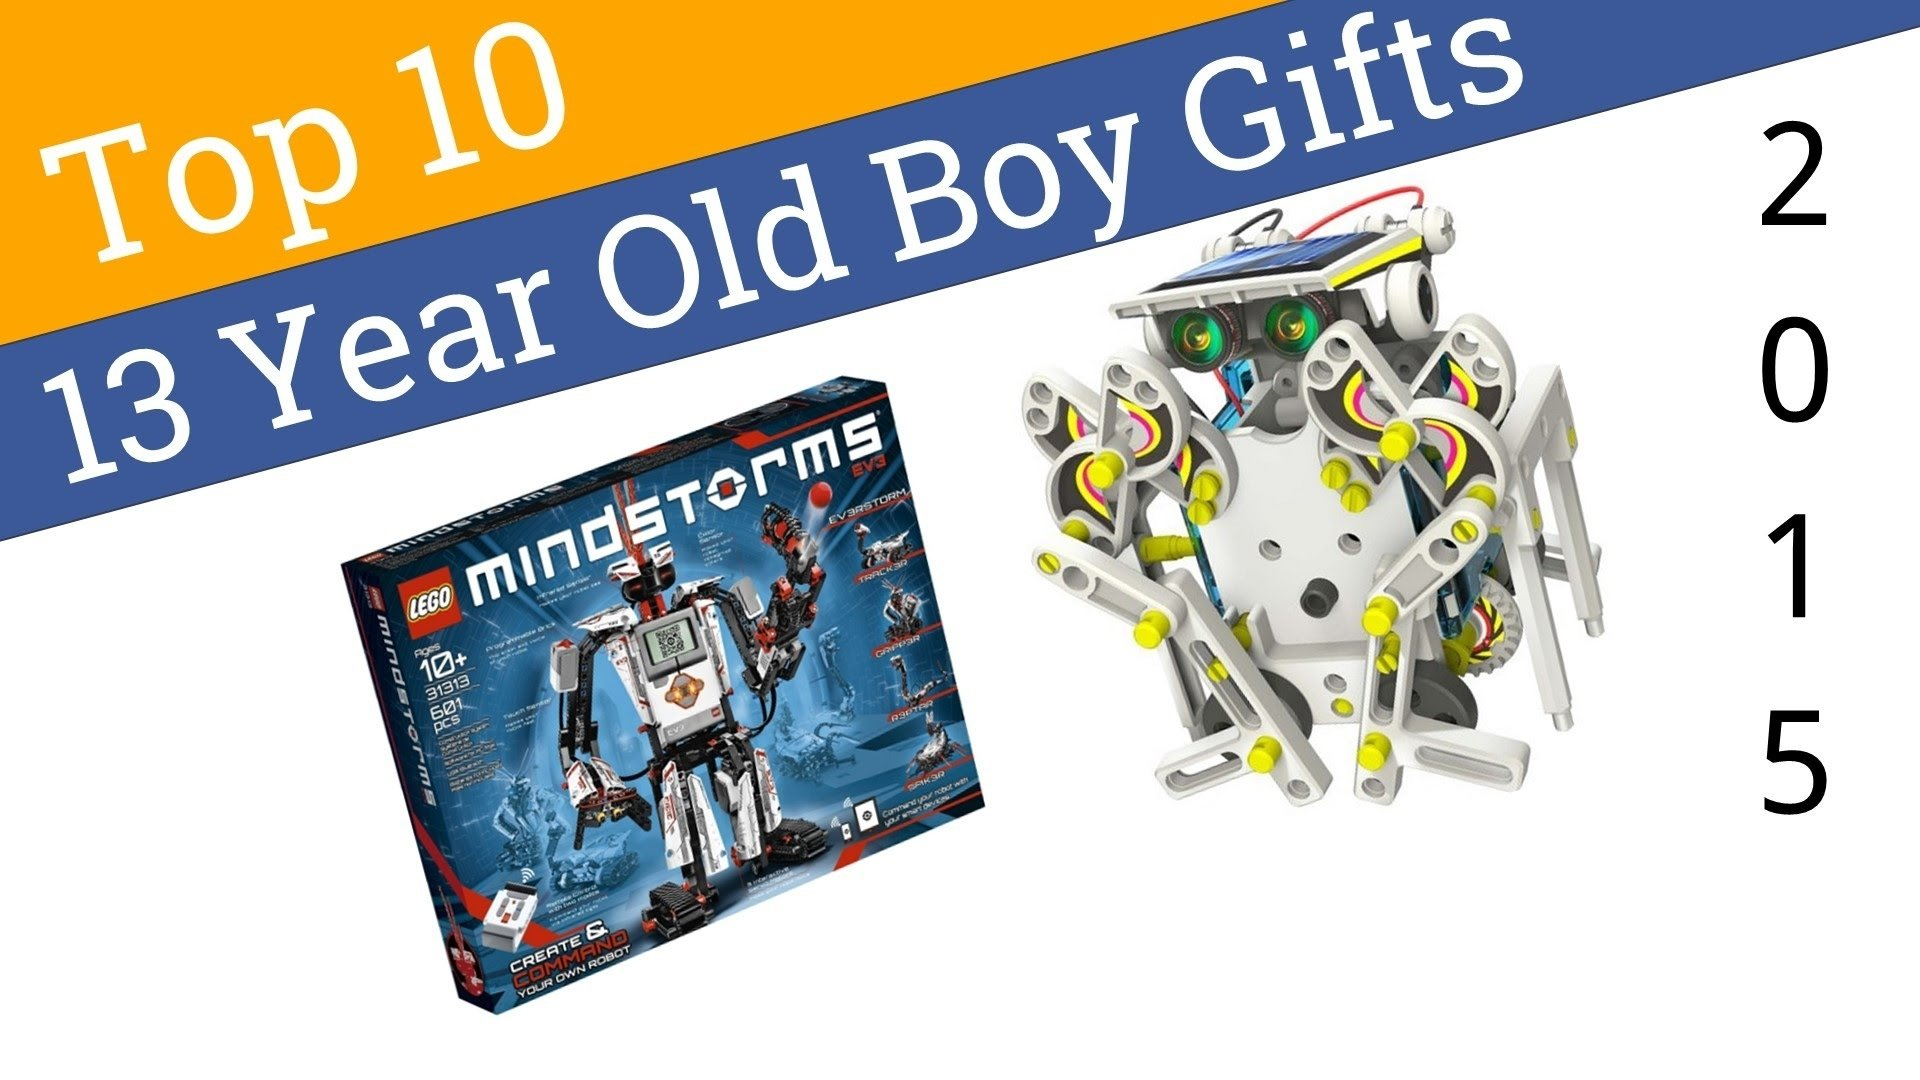 10 Ideal Christmas Ideas For 10 Year Old Boy 10 best 13 year old boy gifts 2015 youtube 7 2021